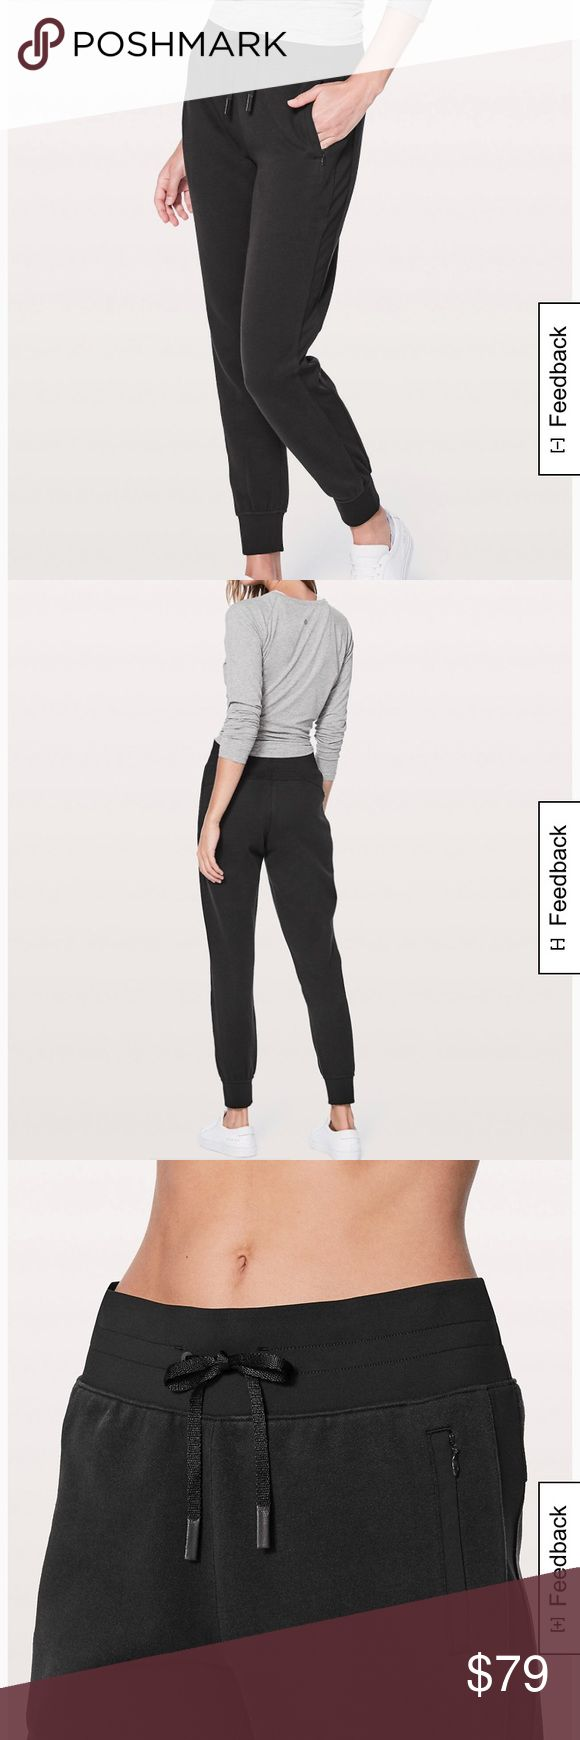 """Get going joggers Get going joggers 28.5"""". Size 4. New with tags. They didn't fit but were final sale online. They are now sold out in this size and color lululemon athletica Pants"""